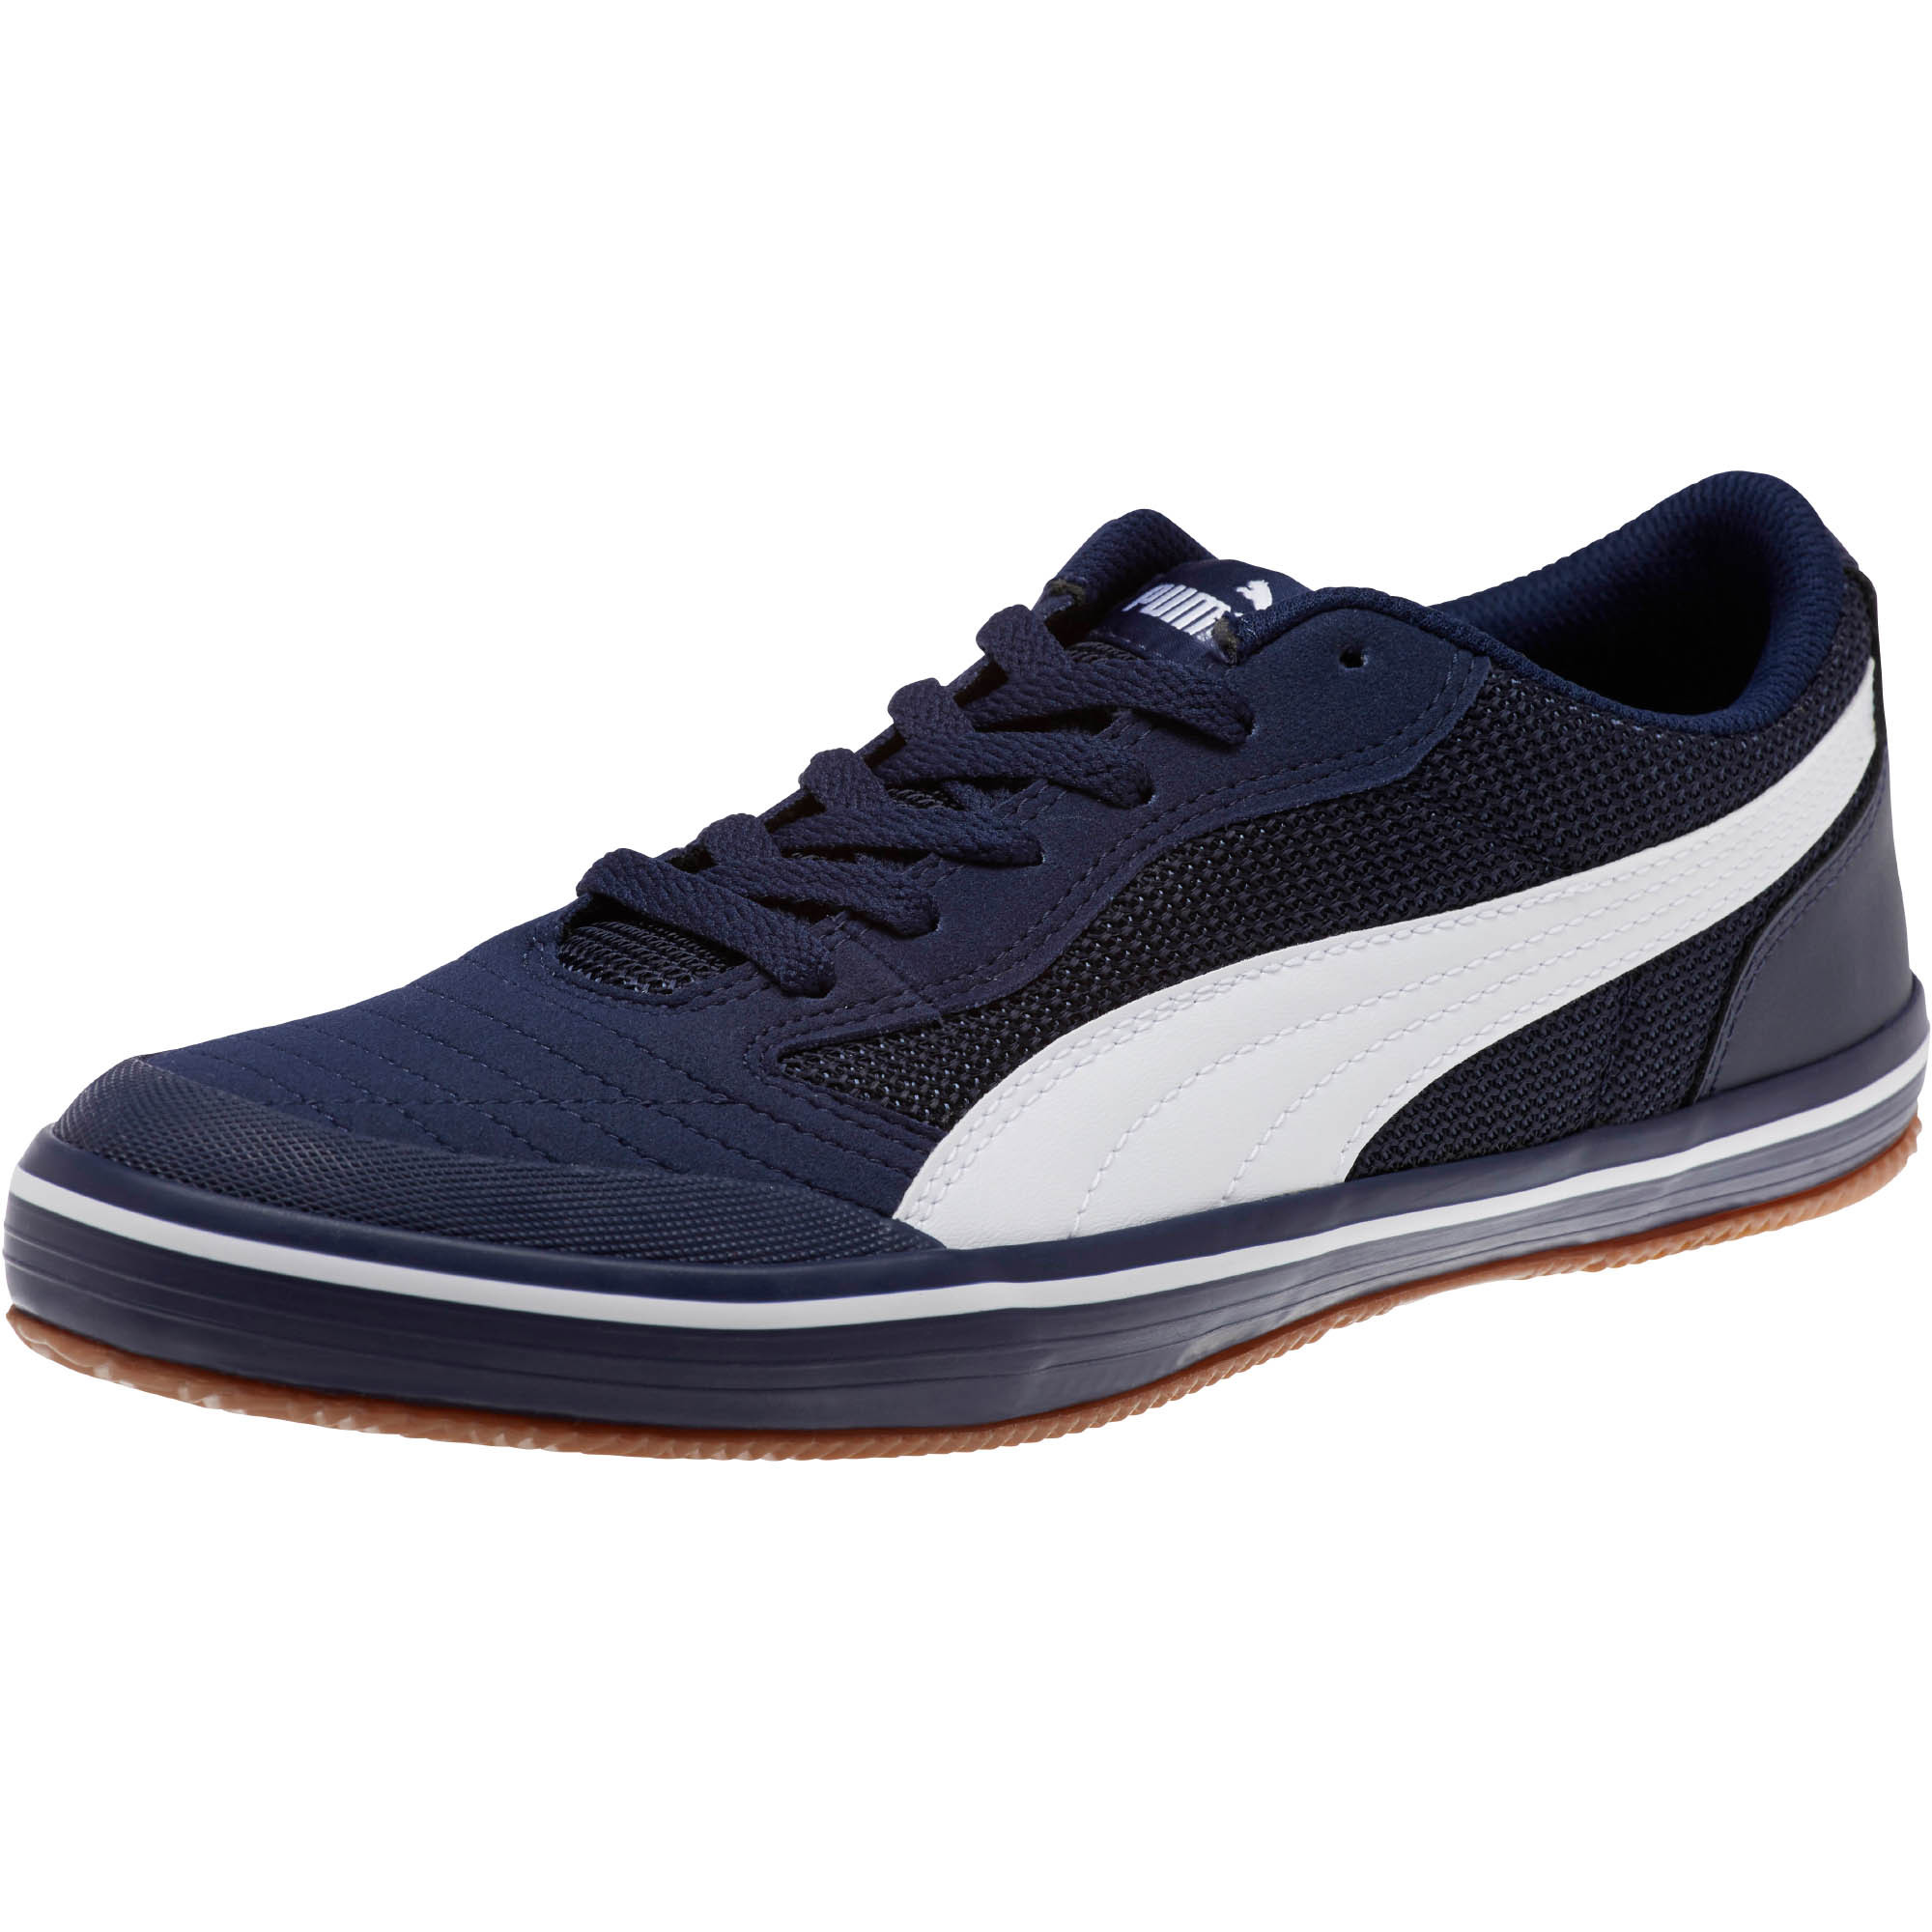 PUMA-Men-039-s-Astro-Sala-Sneakers thumbnail 8